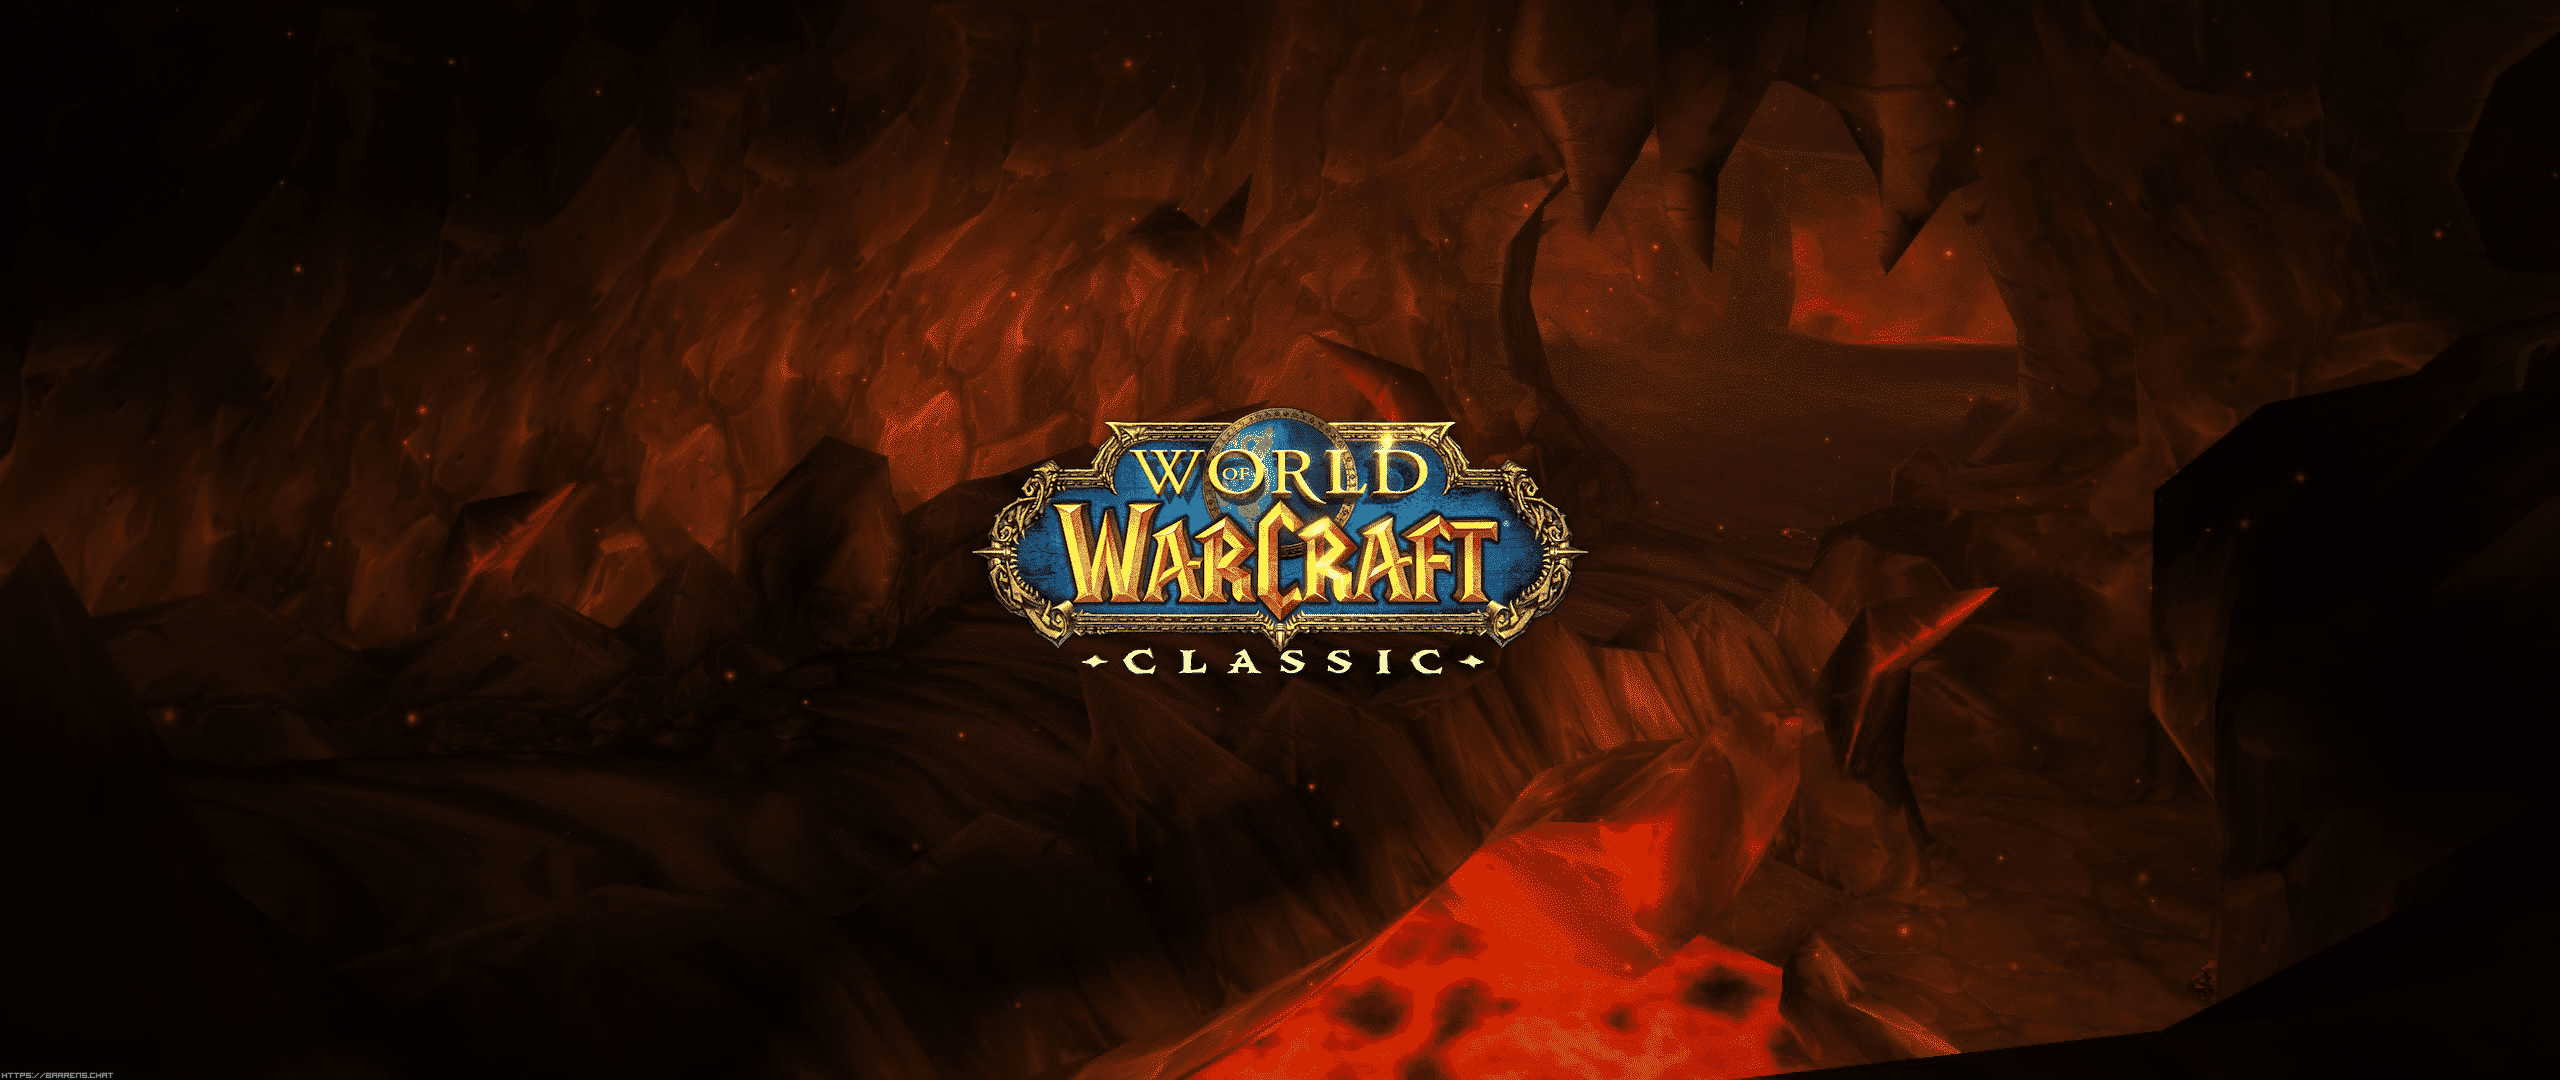 World of WarCraft Classic - WoW Craft